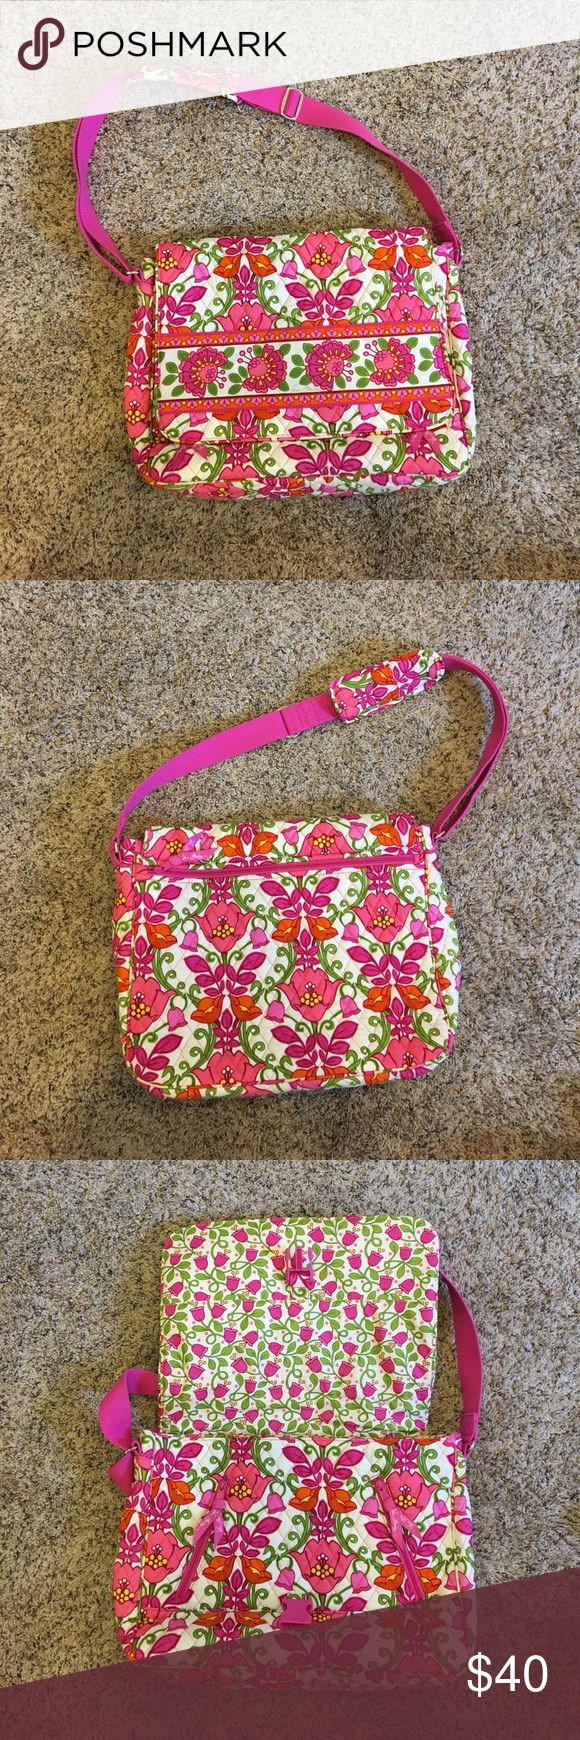 Vera Bradley Messenger Backpack Lightly used Vera Bradley messenger backpack in Lilli Bell print. A little dirty on the inside flap from use. Vera Bradley Bags Shoulder Bags